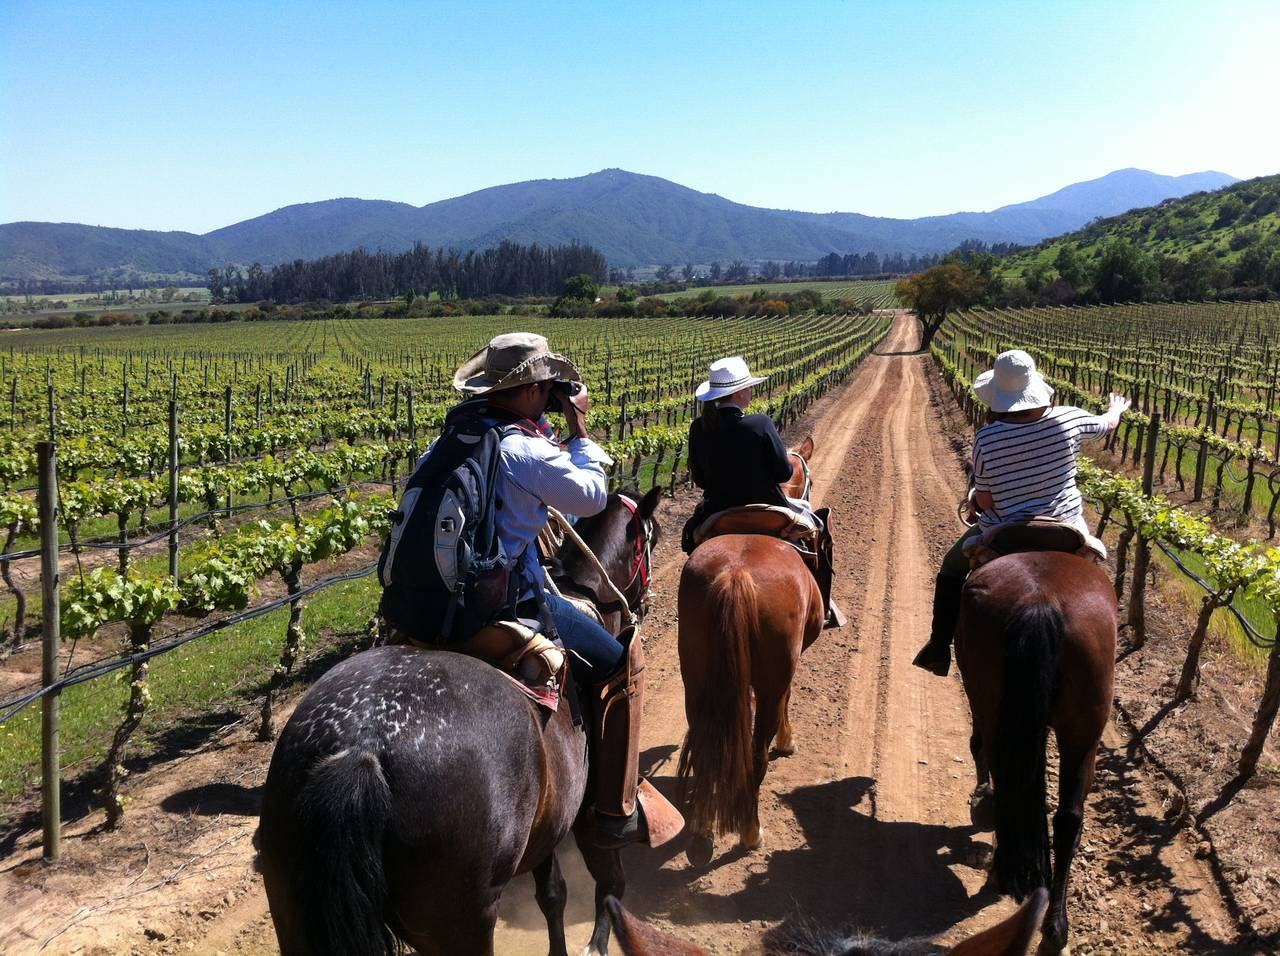 Horseback riding among the vineyard